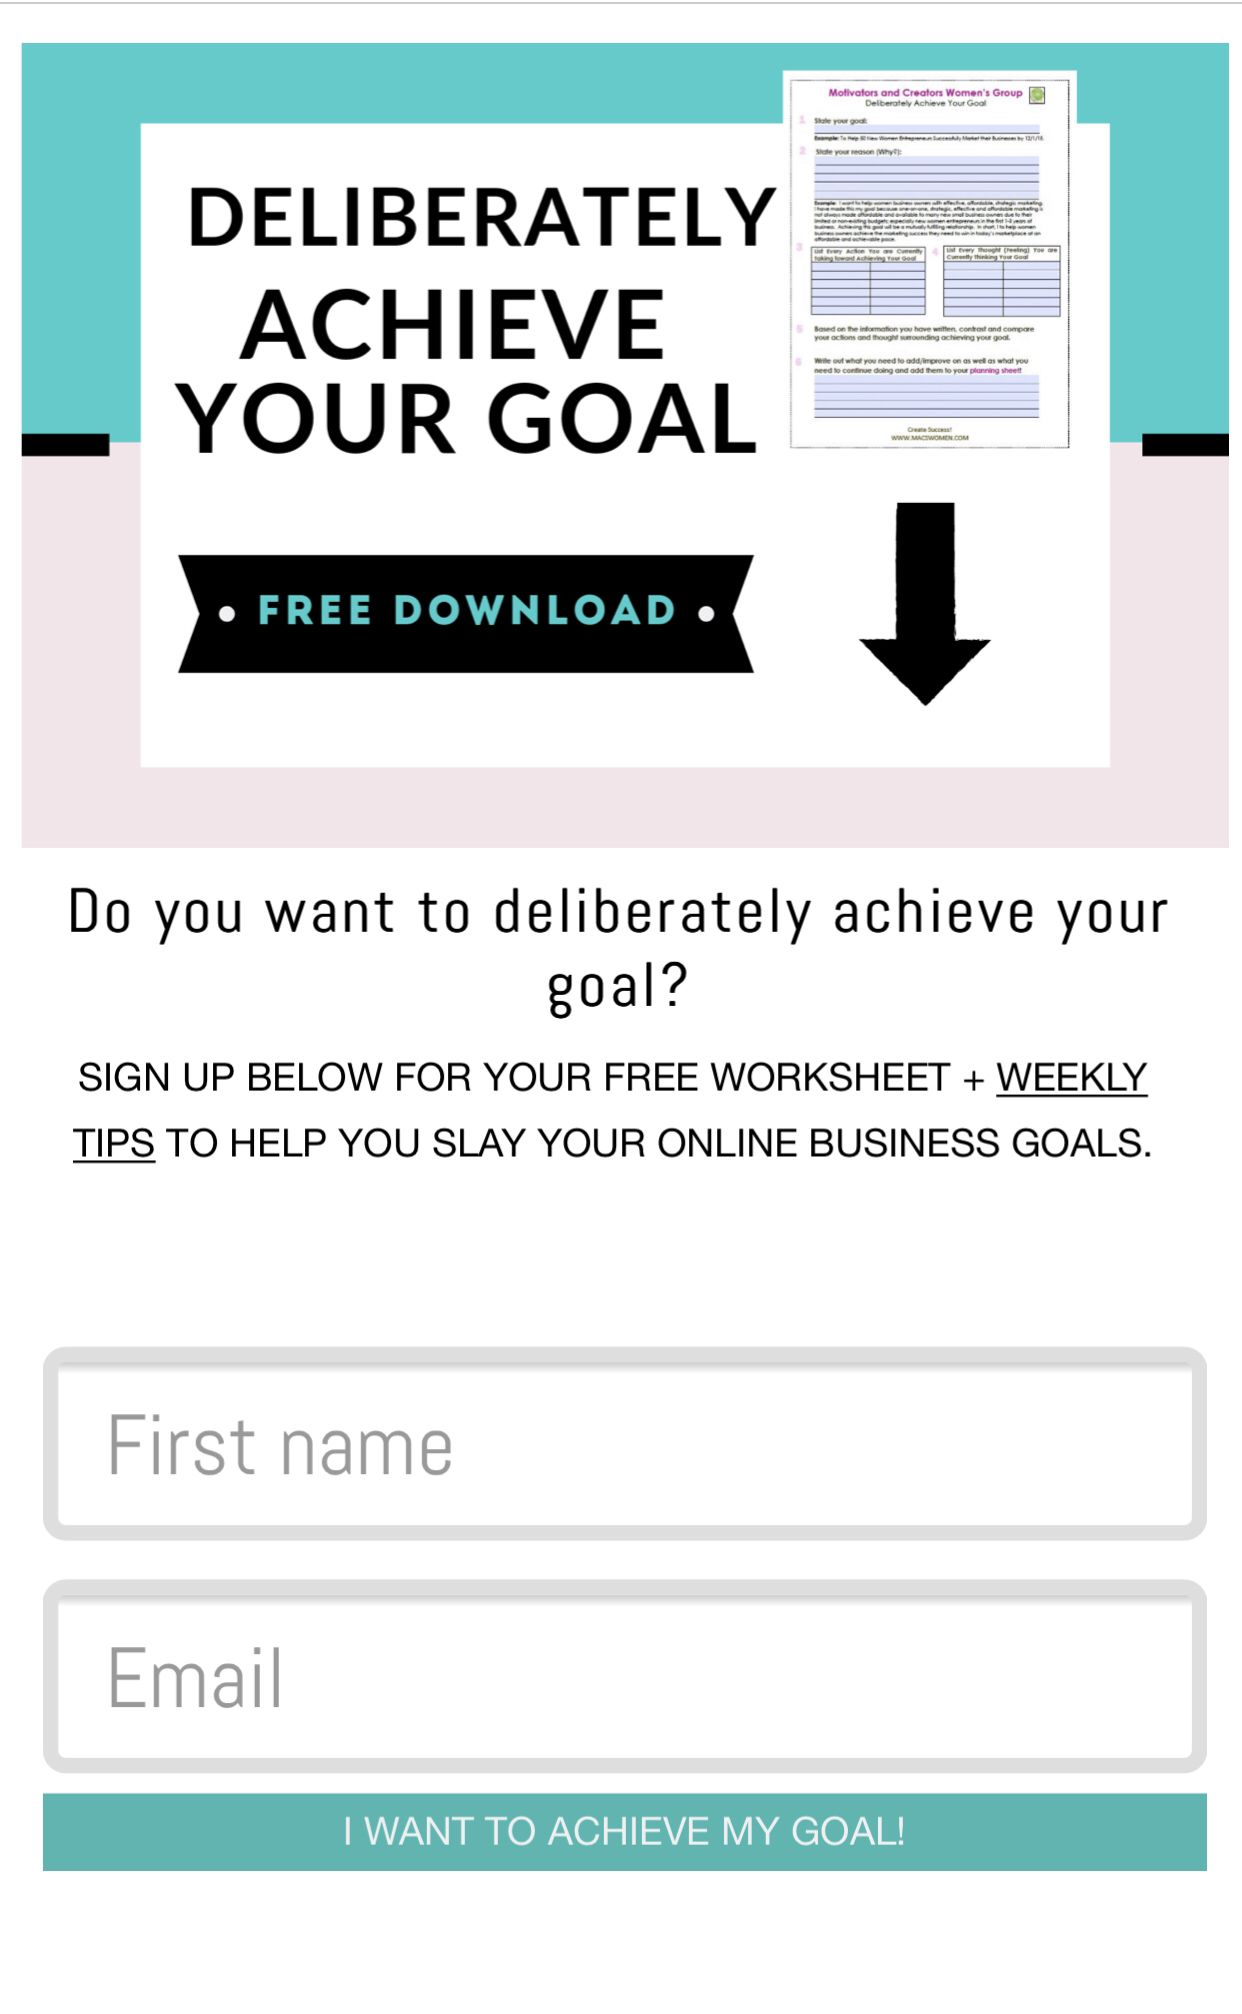 Free download to help you achieve your goals for your